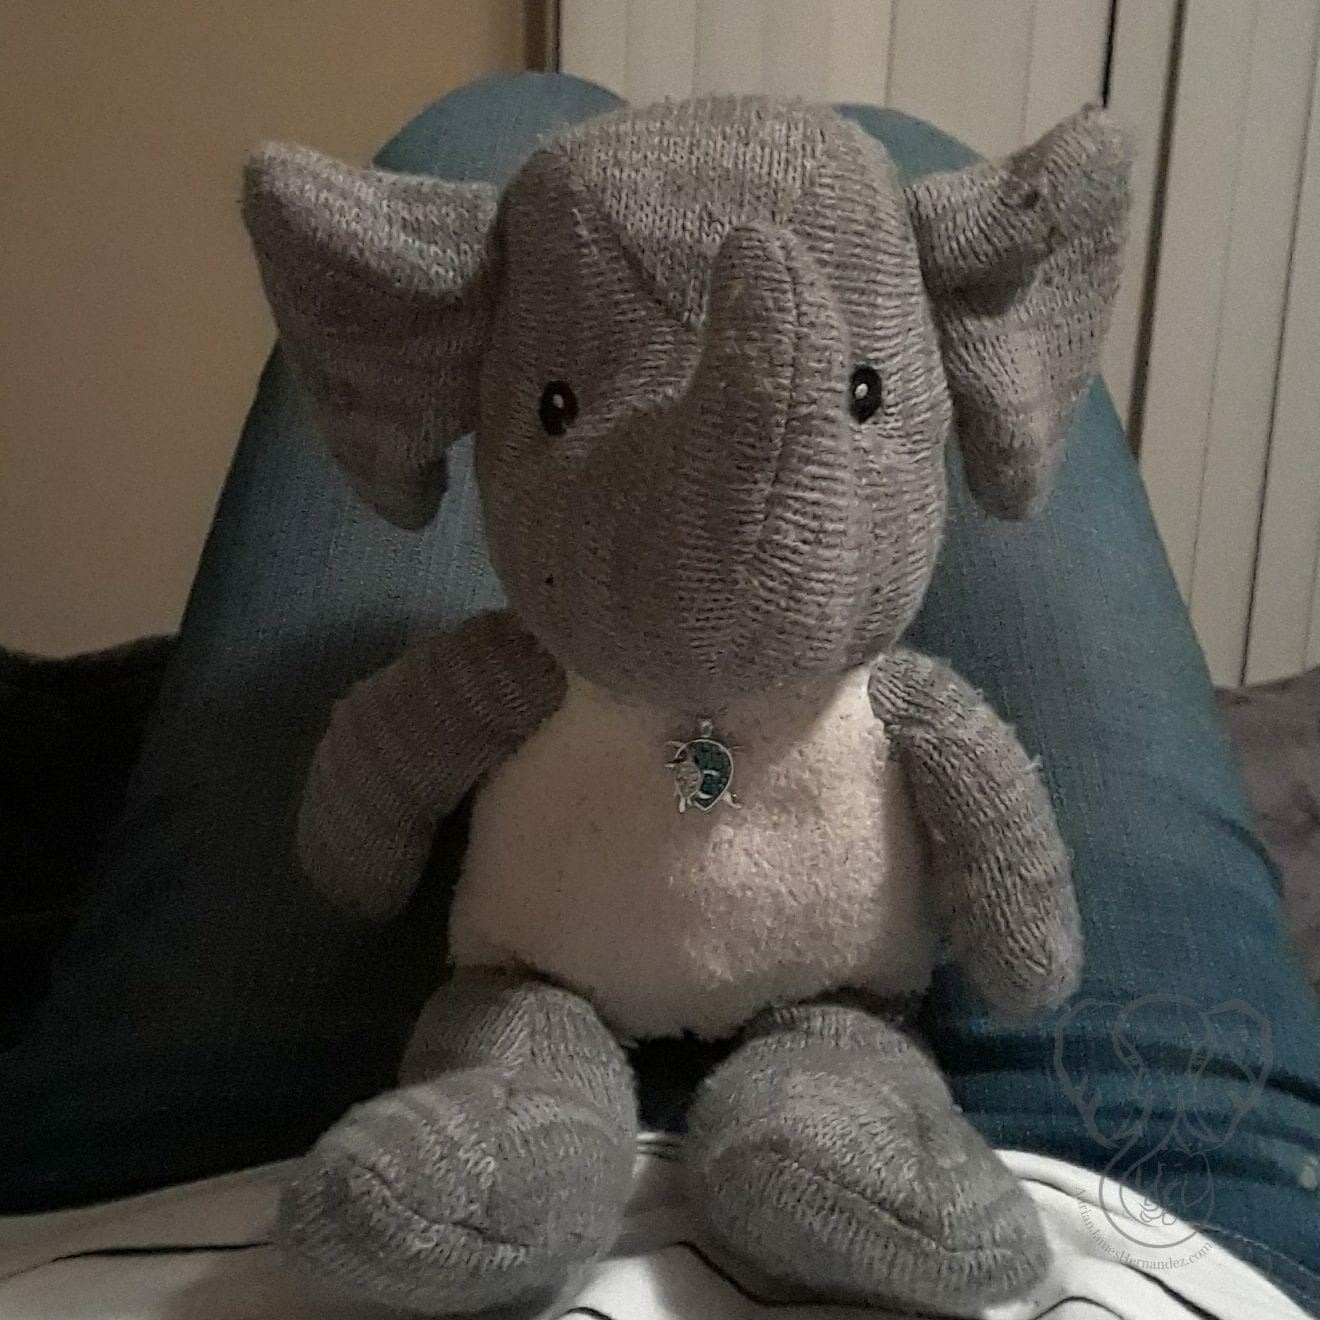 Close up of Adrian's Elephant on Miranda's lap. Miranda is wearing blue jeans and white shirt, and Elephant is sitting in her lap facing the camera (Miranda Hernandez)